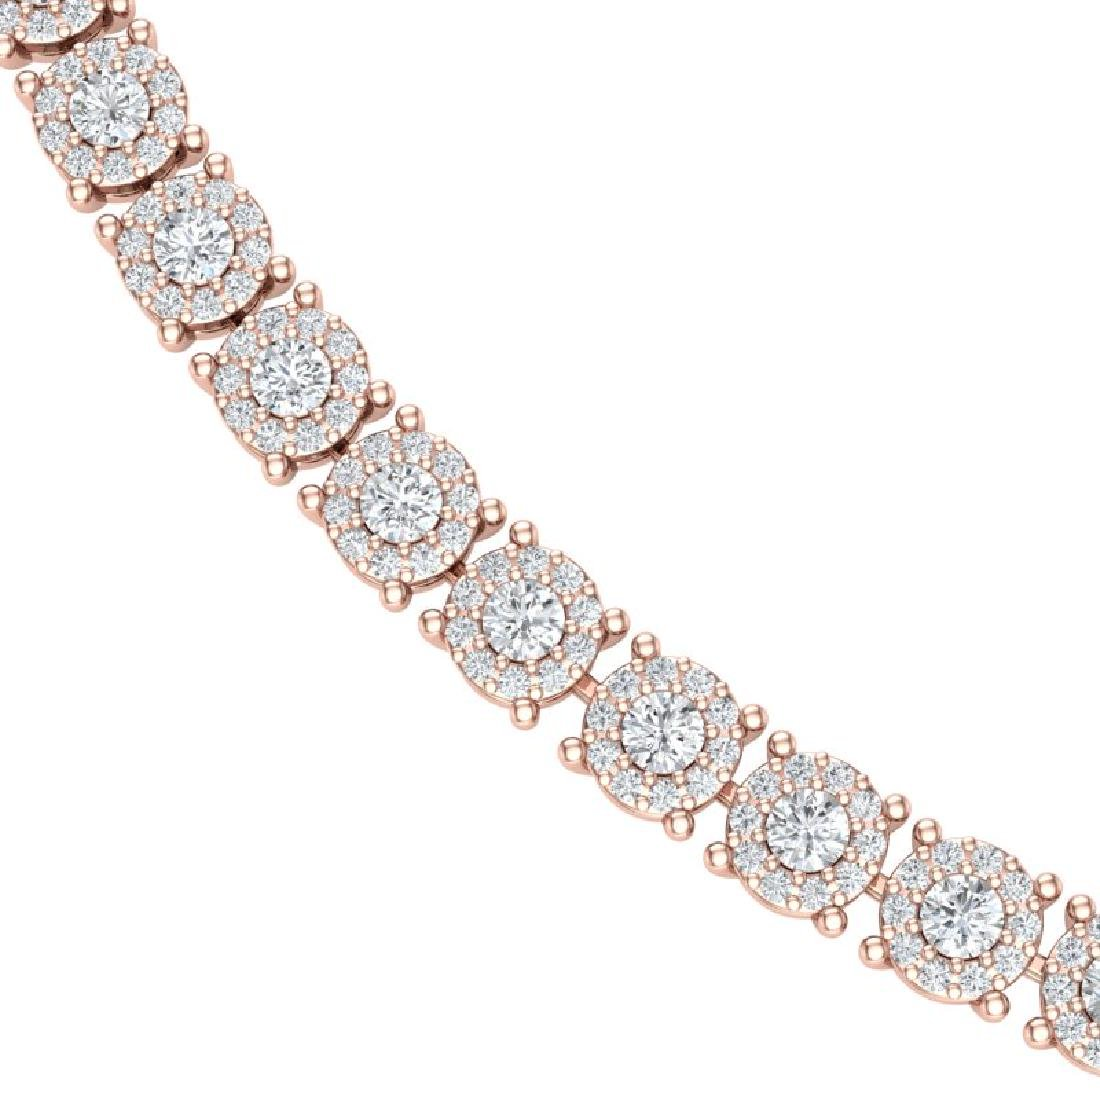 12 CTW Certified SI/I Diamond Halo Necklace 18K Rose - 2